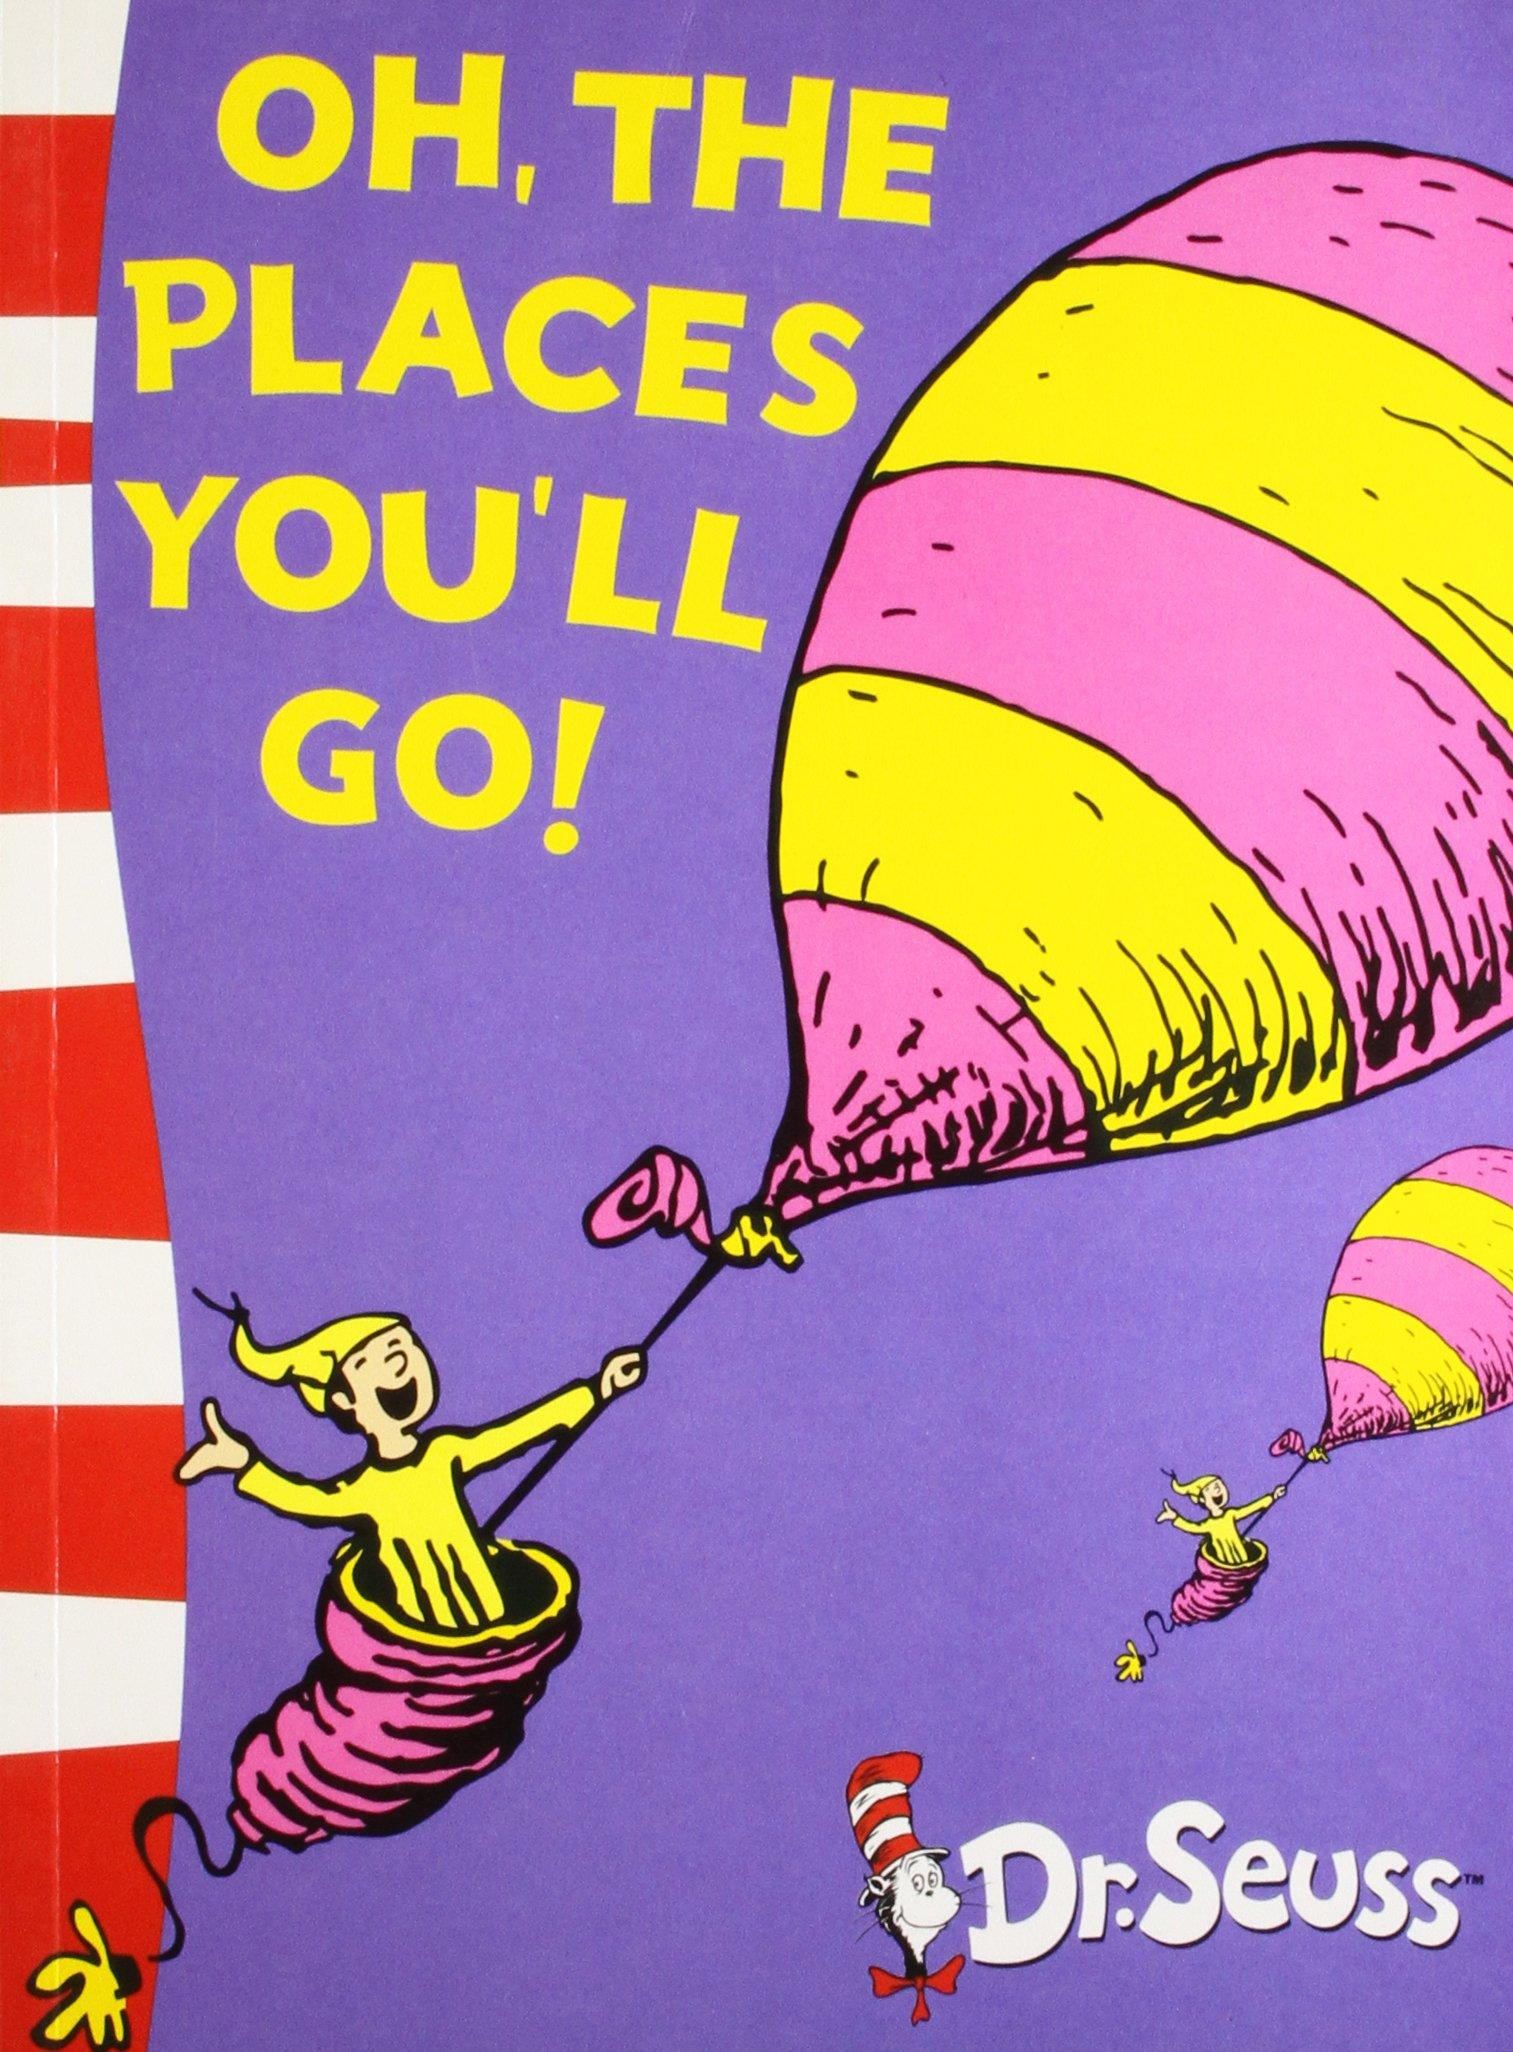 Books for toddlers - Oh, the places you'll go